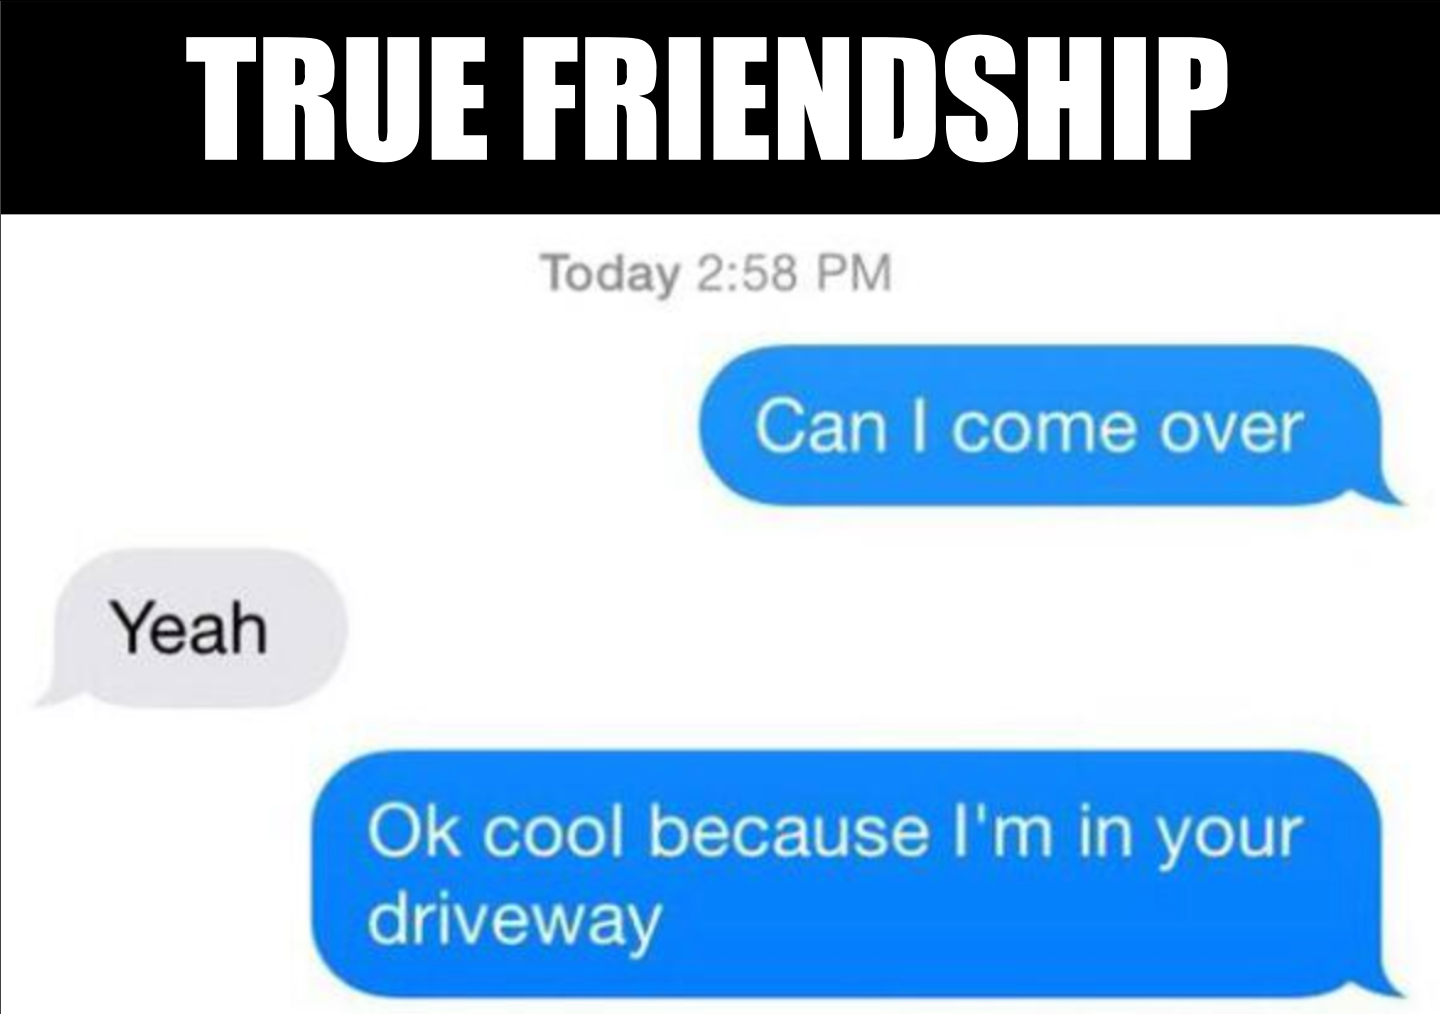 true friendship, can i come over?, yeah, ok cool because i'm in your driveway